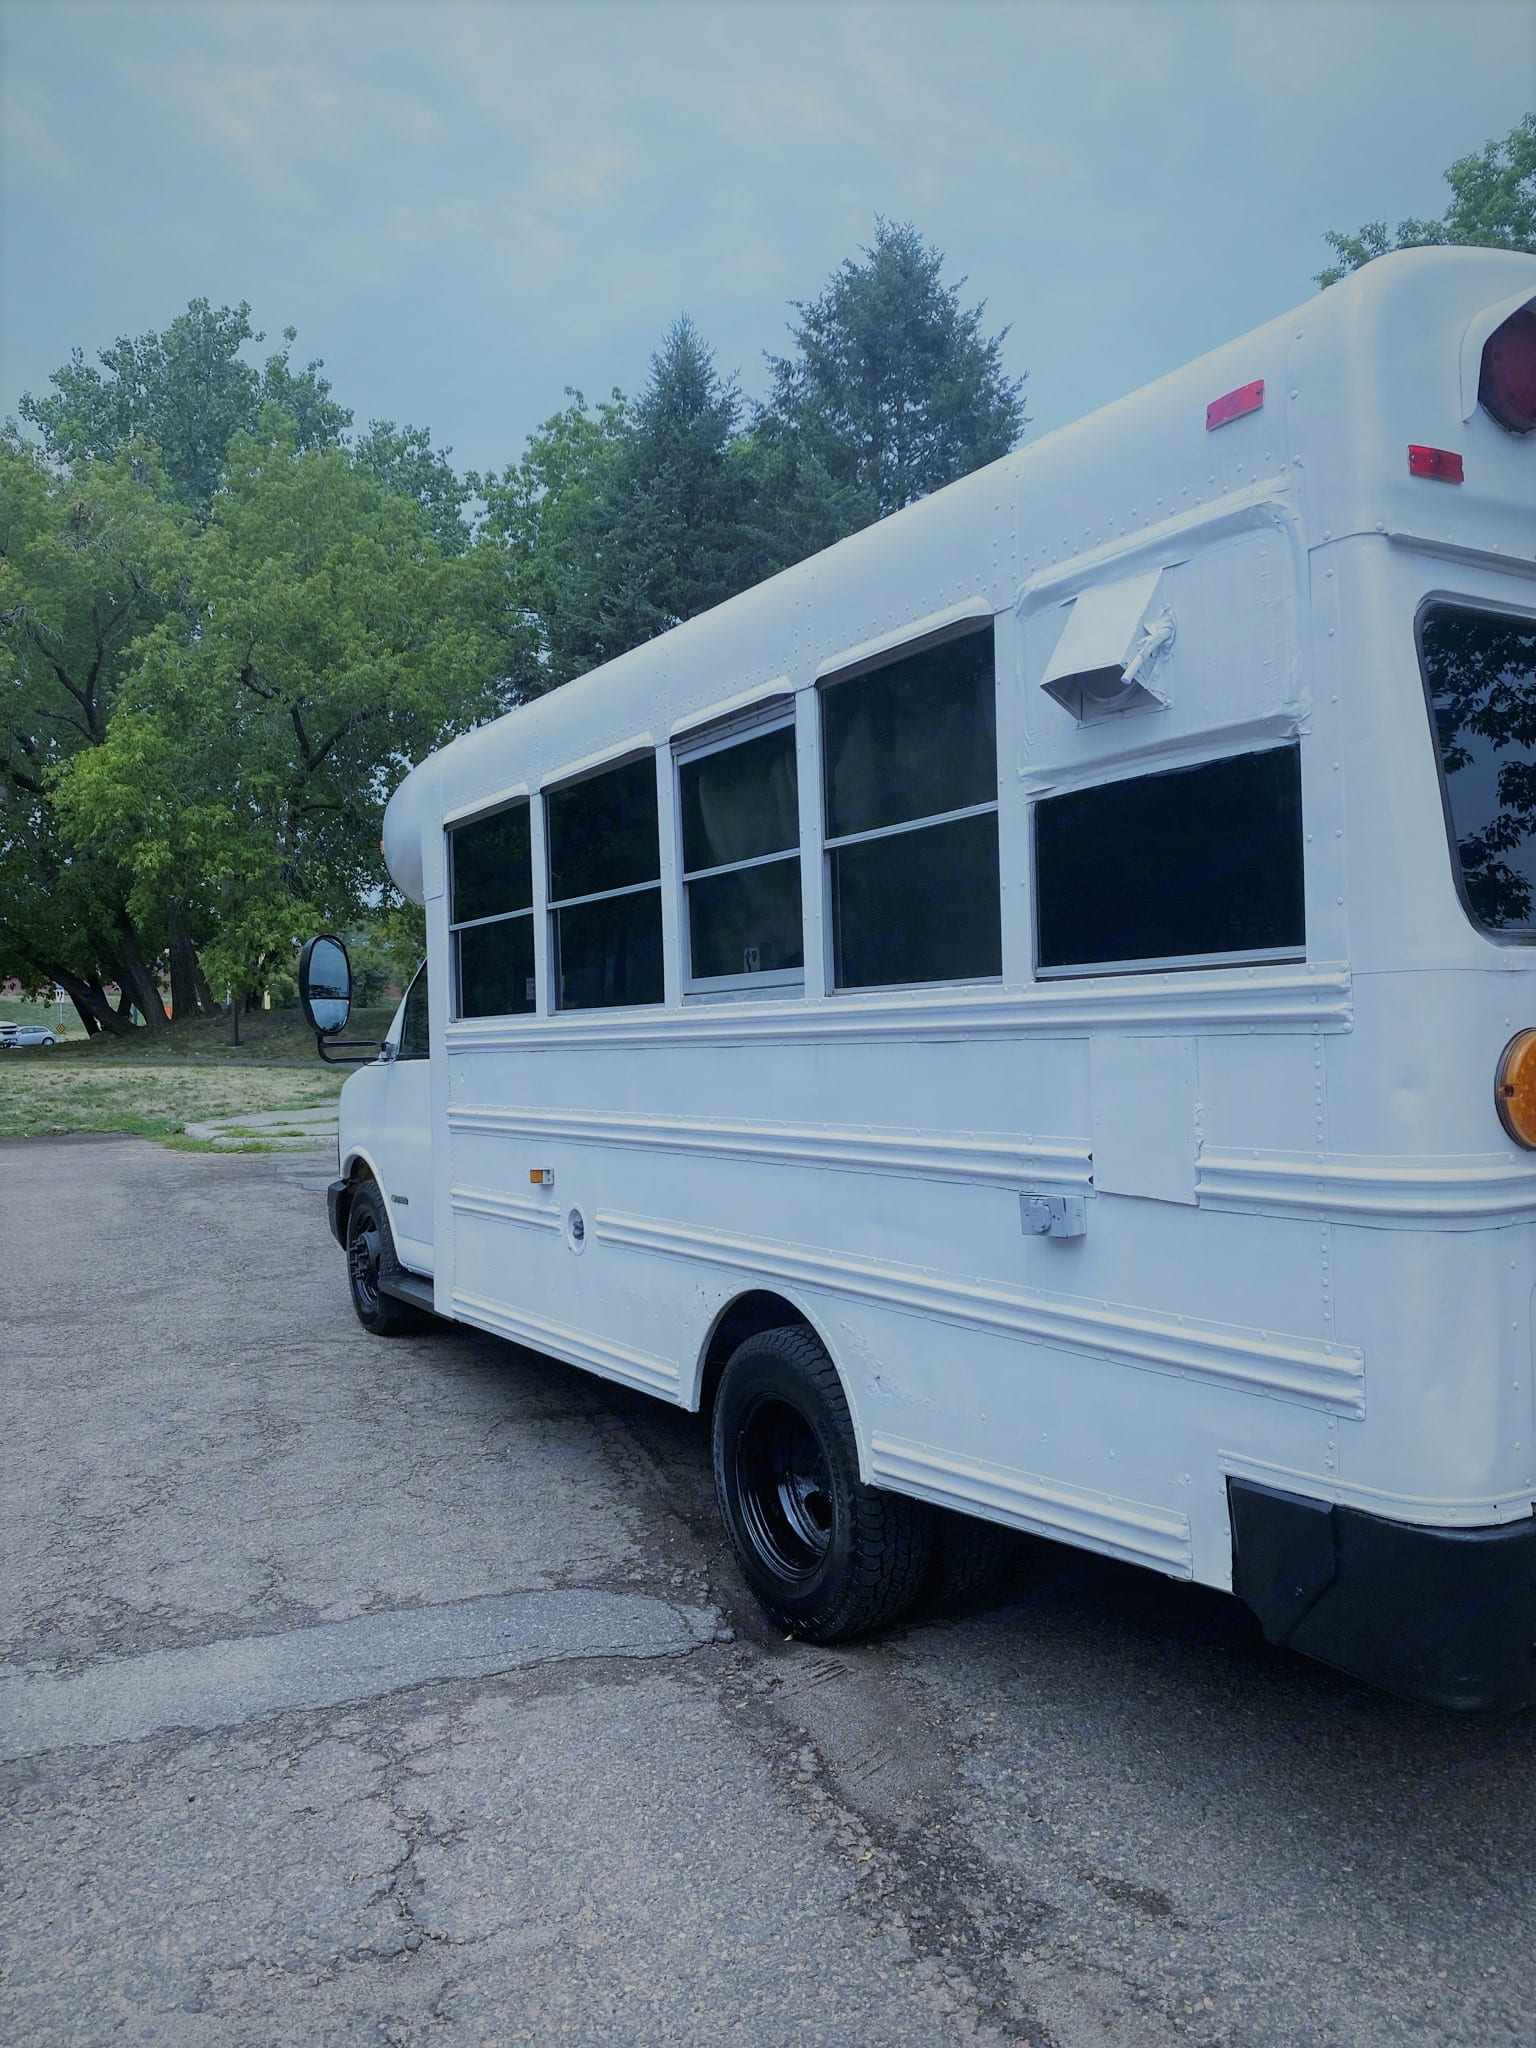 Main 110v electrical hookup and the exterior AC vent and drain. . Blue Bird Bus 2006